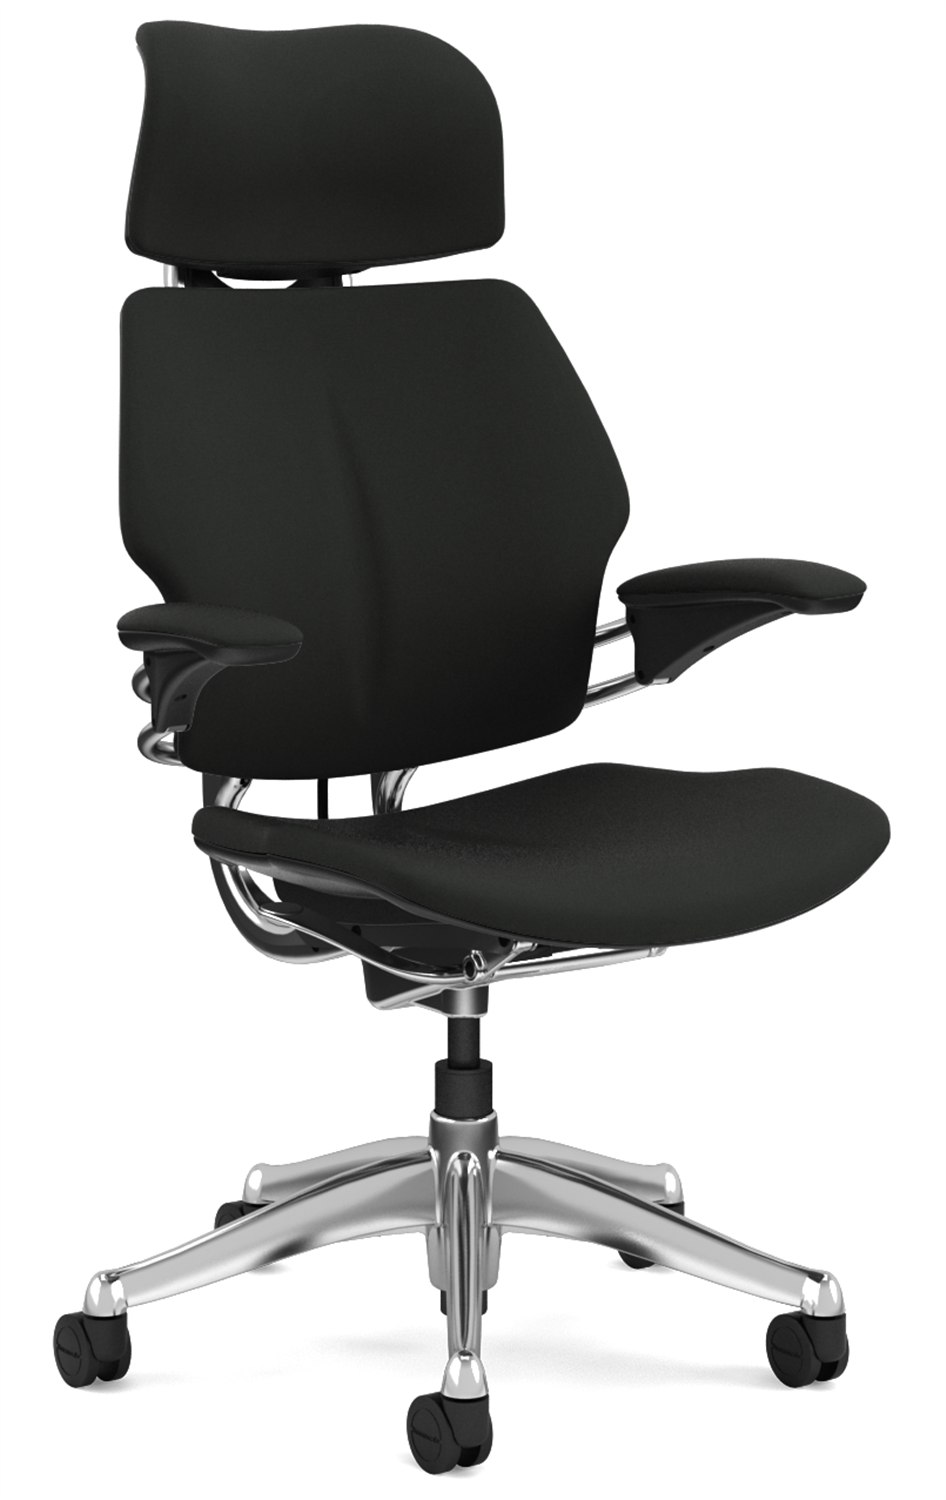 Humanscale Large Image Best ergonomic office chair